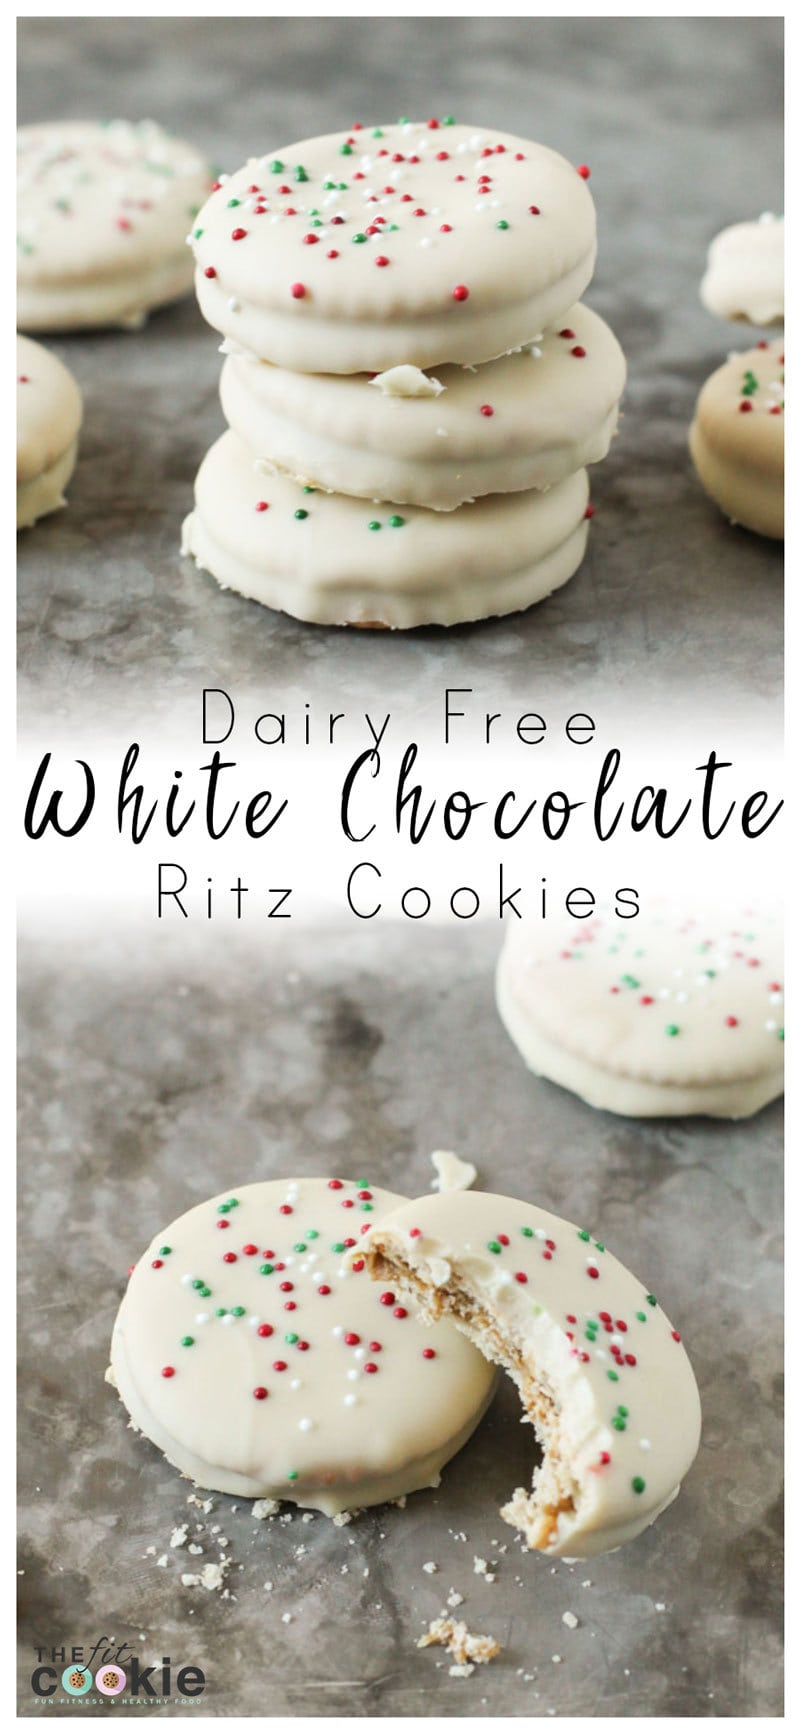 One of my favorite holiday treats when I was growing up: White Chocolate Ritz Cookies! My version is peanut free and dairy free, and so easy to make - @TheFitCookie #dairyfree #vegan #cookies